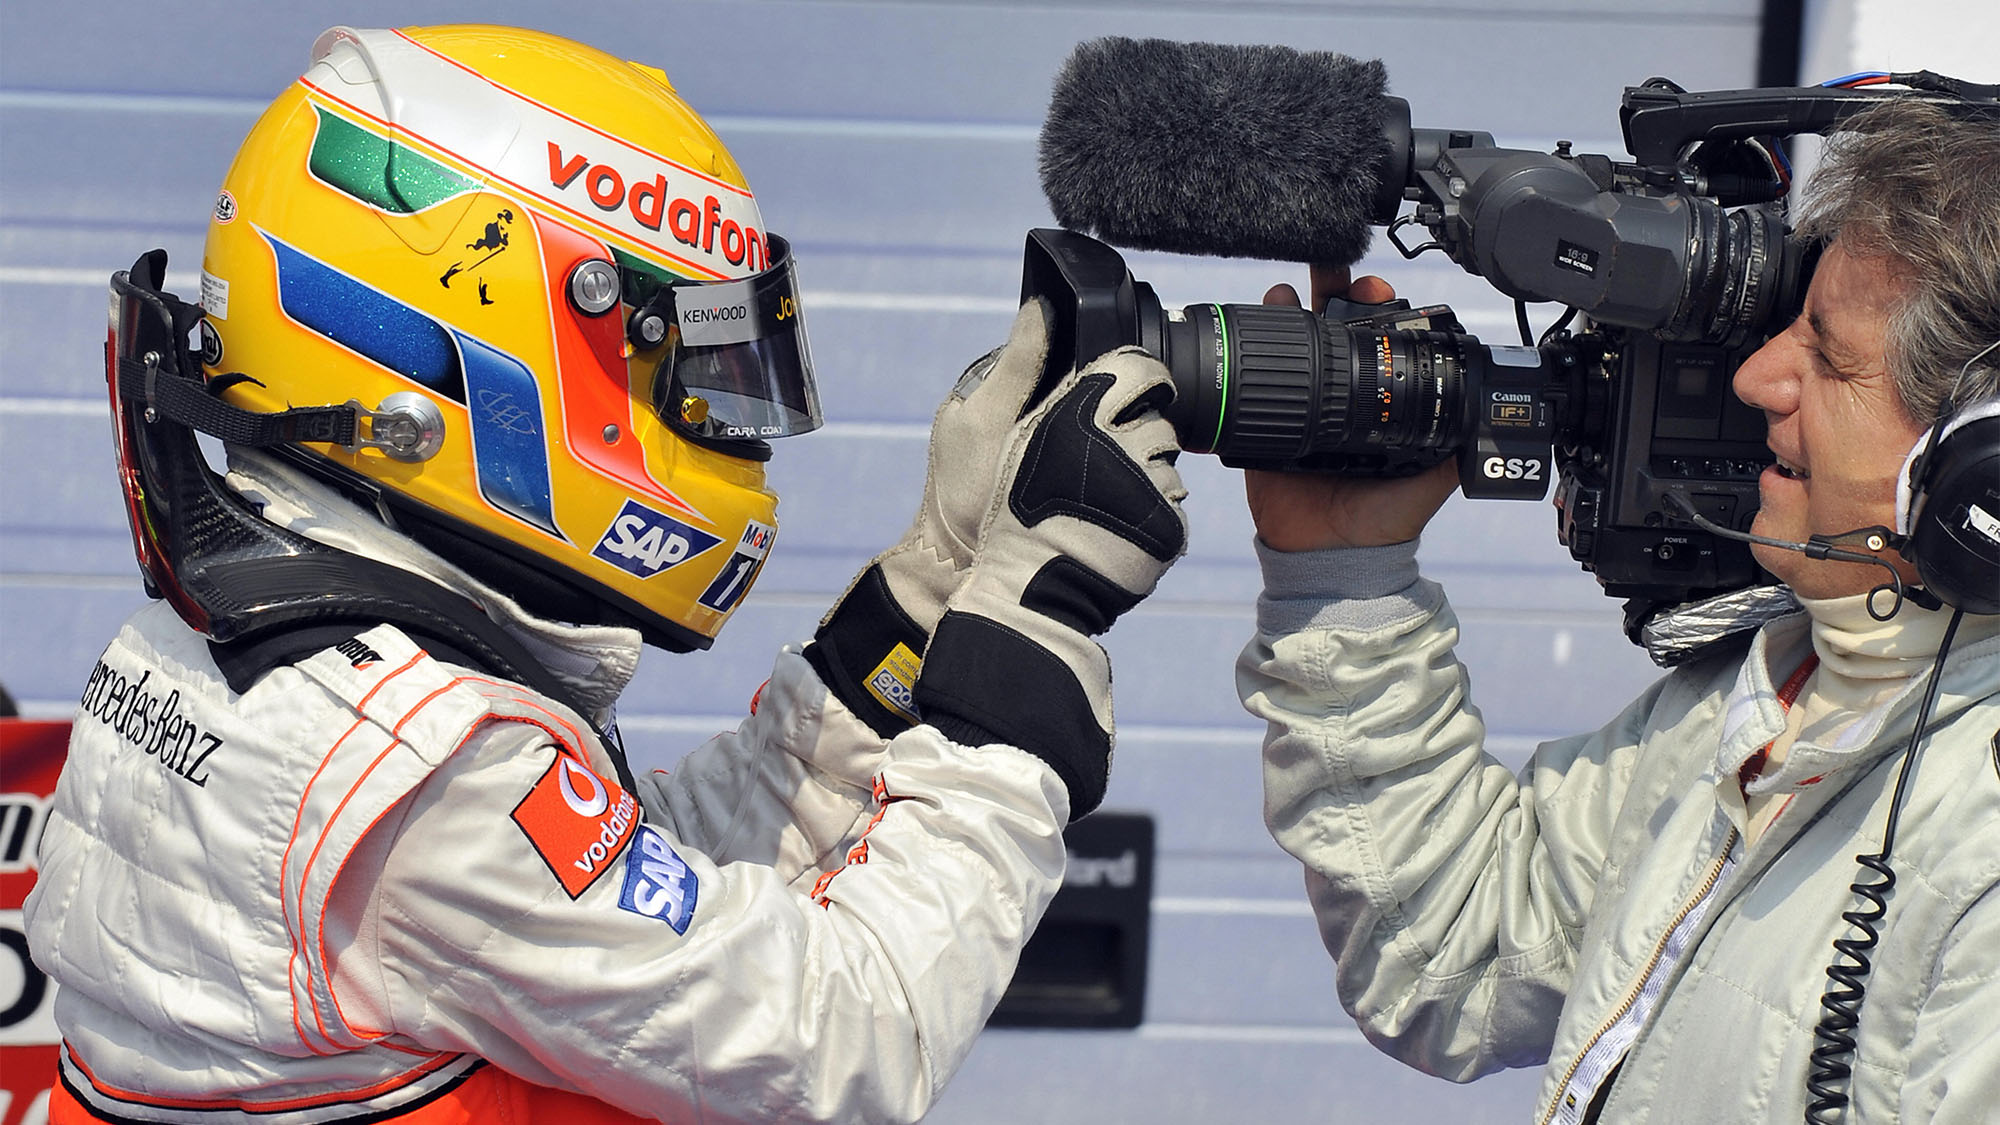 McLaren Mercedes' British driver Lewis Hamilton celebrates with a cameraman in the parc ferme of the Hungaroring racetrack on August 2, 2008 in Budapest after the qualifying session of the Formula One Hungarian Grand Prix. McLaren Mercedes' British driver Lewis Hamilton took the pole position ahead of his Finnish team mate Heikki Kovalainen and Ferrari Brazilian's driver Felipe Massa.